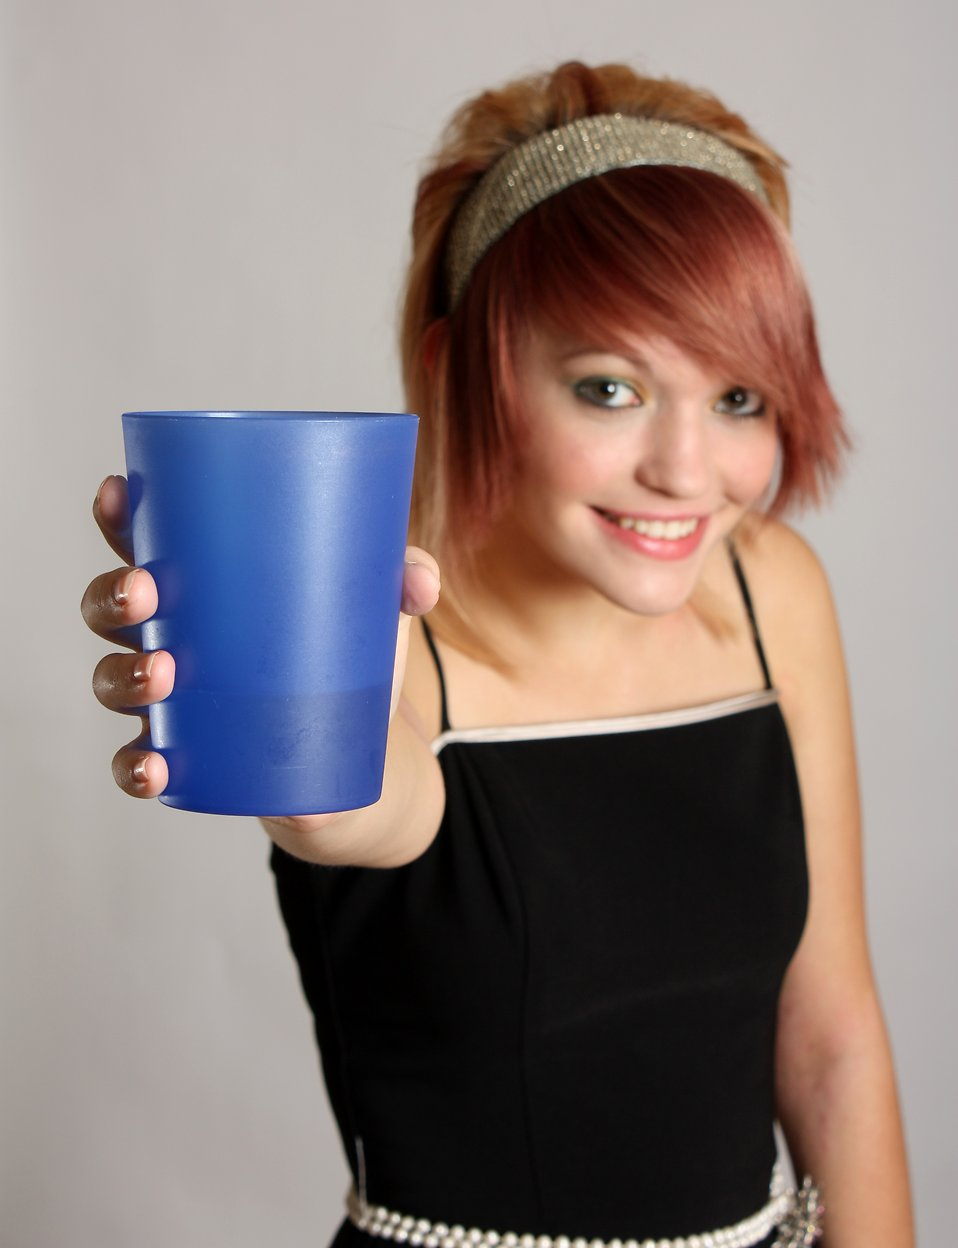 A beautiful girl offering a plastic cup drink : Free Stock Photo